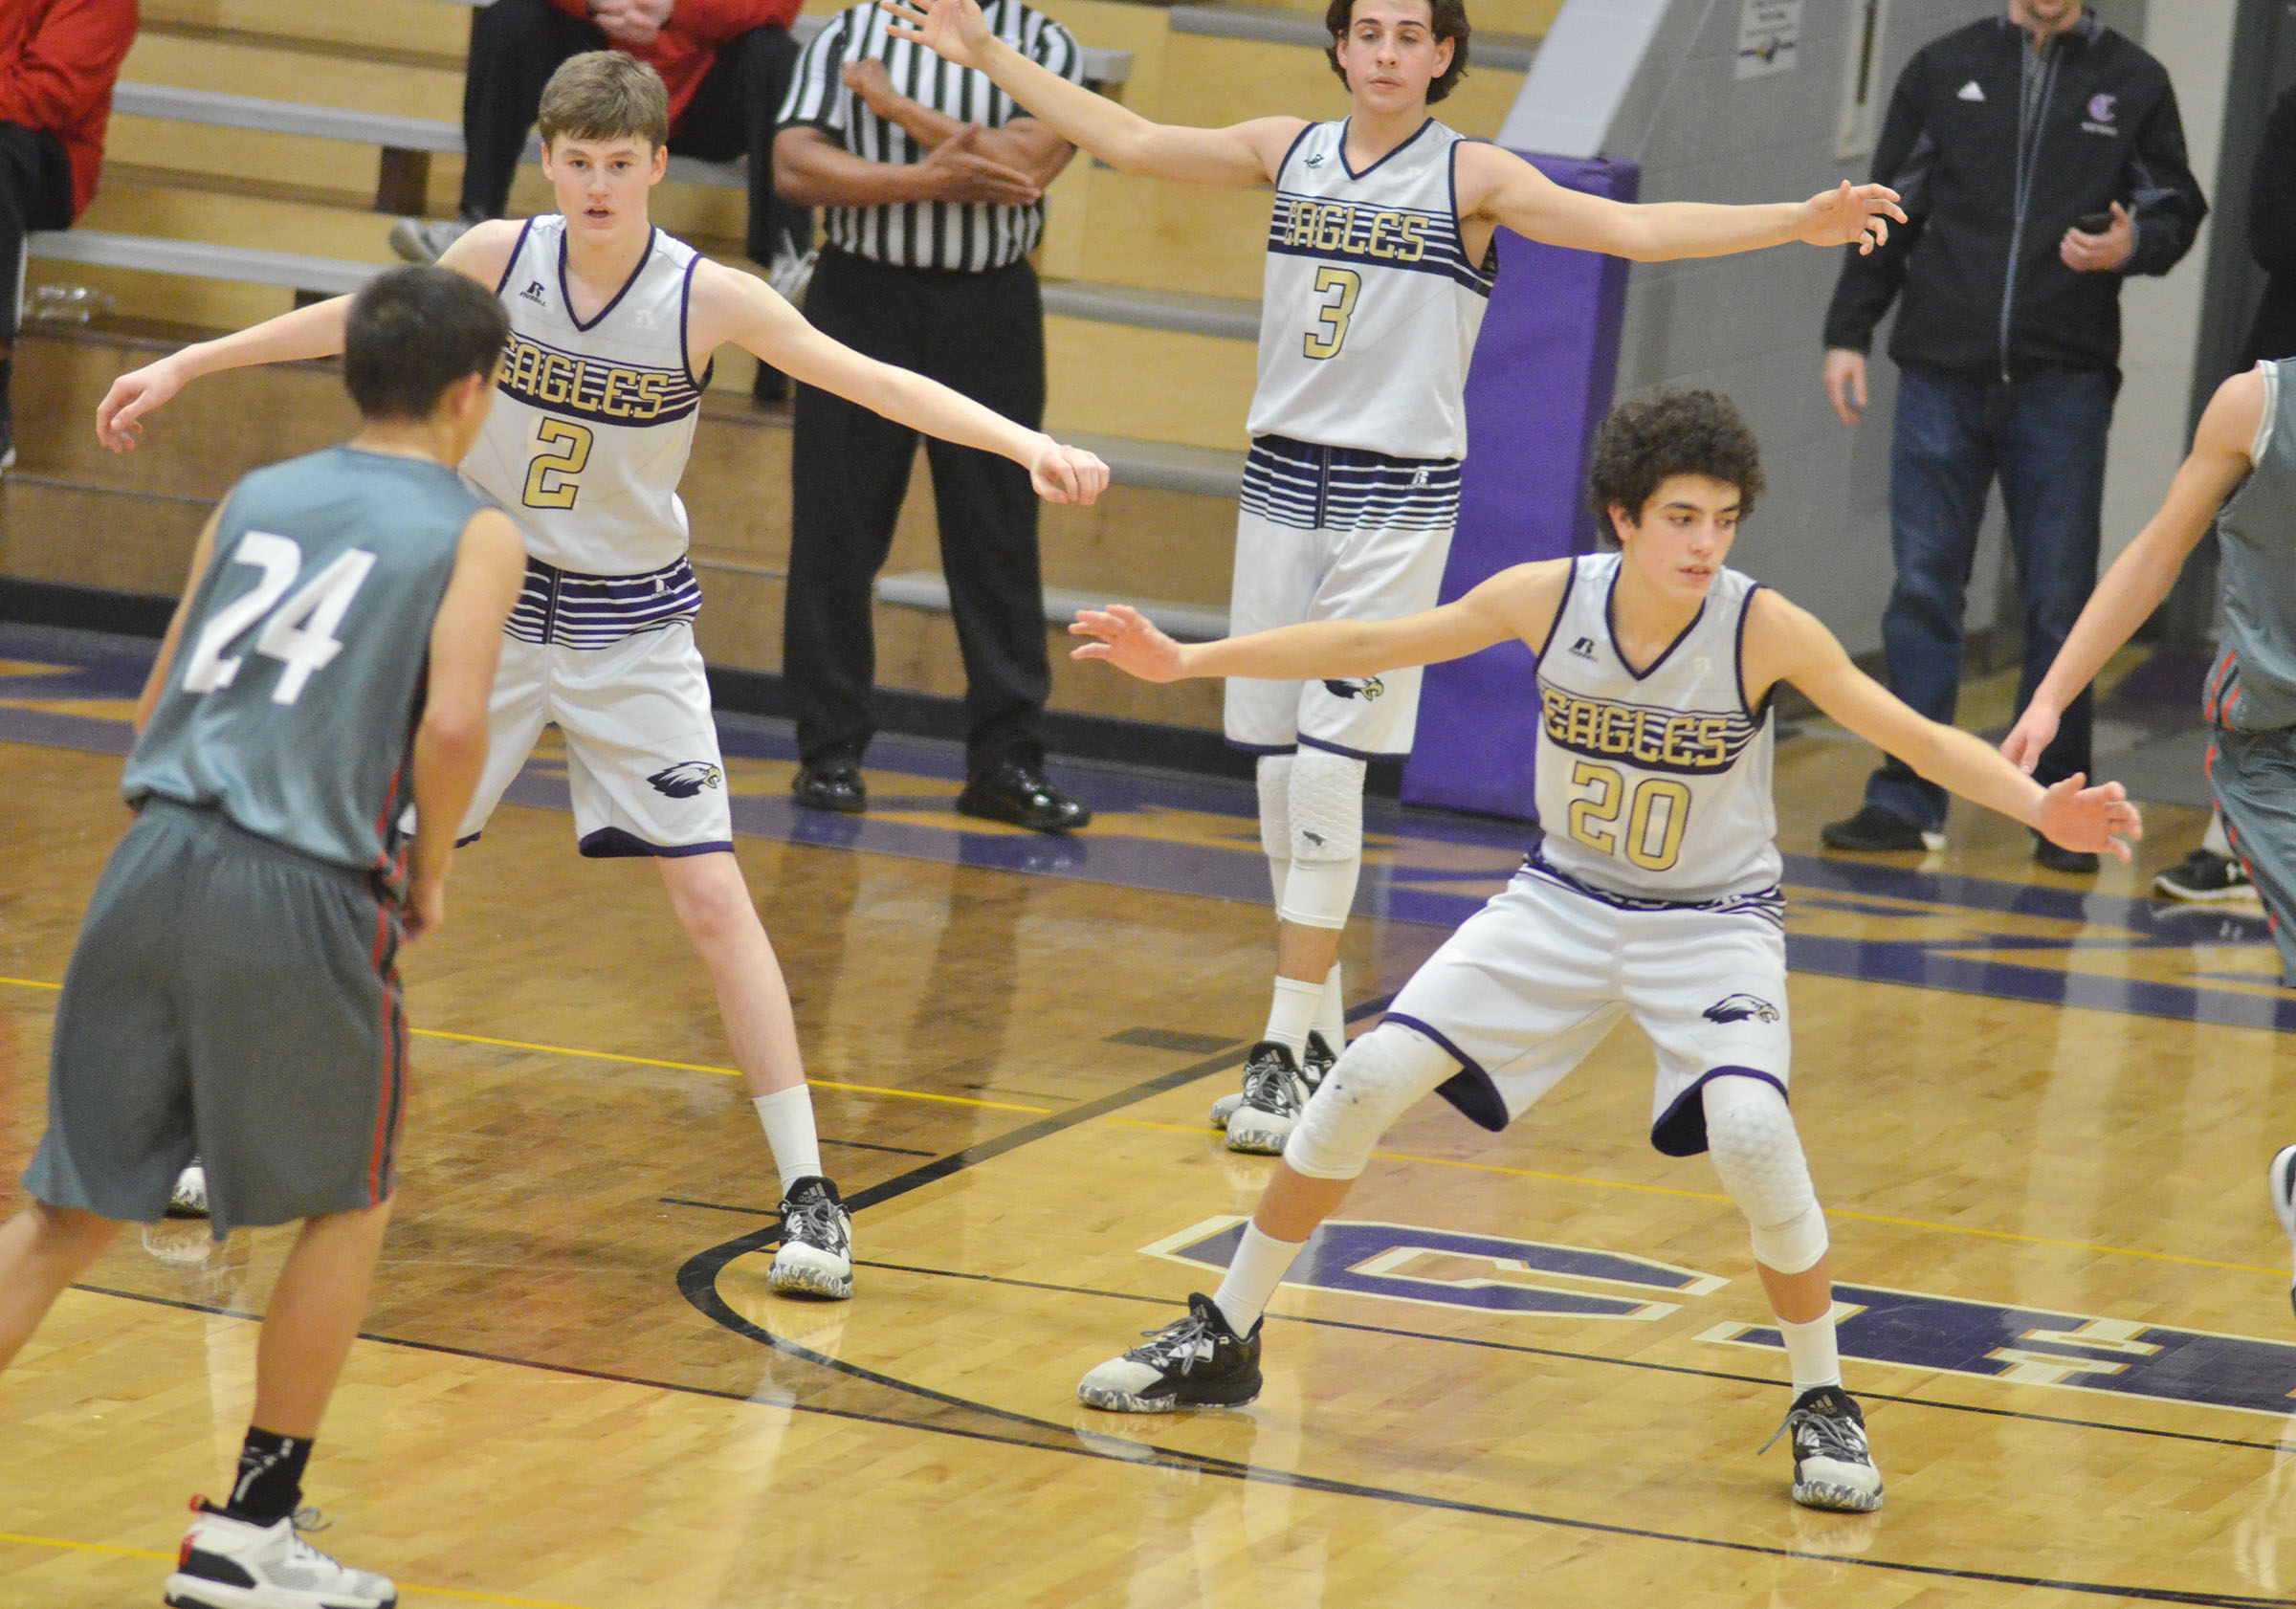 From left, CMS eighth-graders Tristin Faulkner, John Orberson and Kameron Smith get set to play defense.